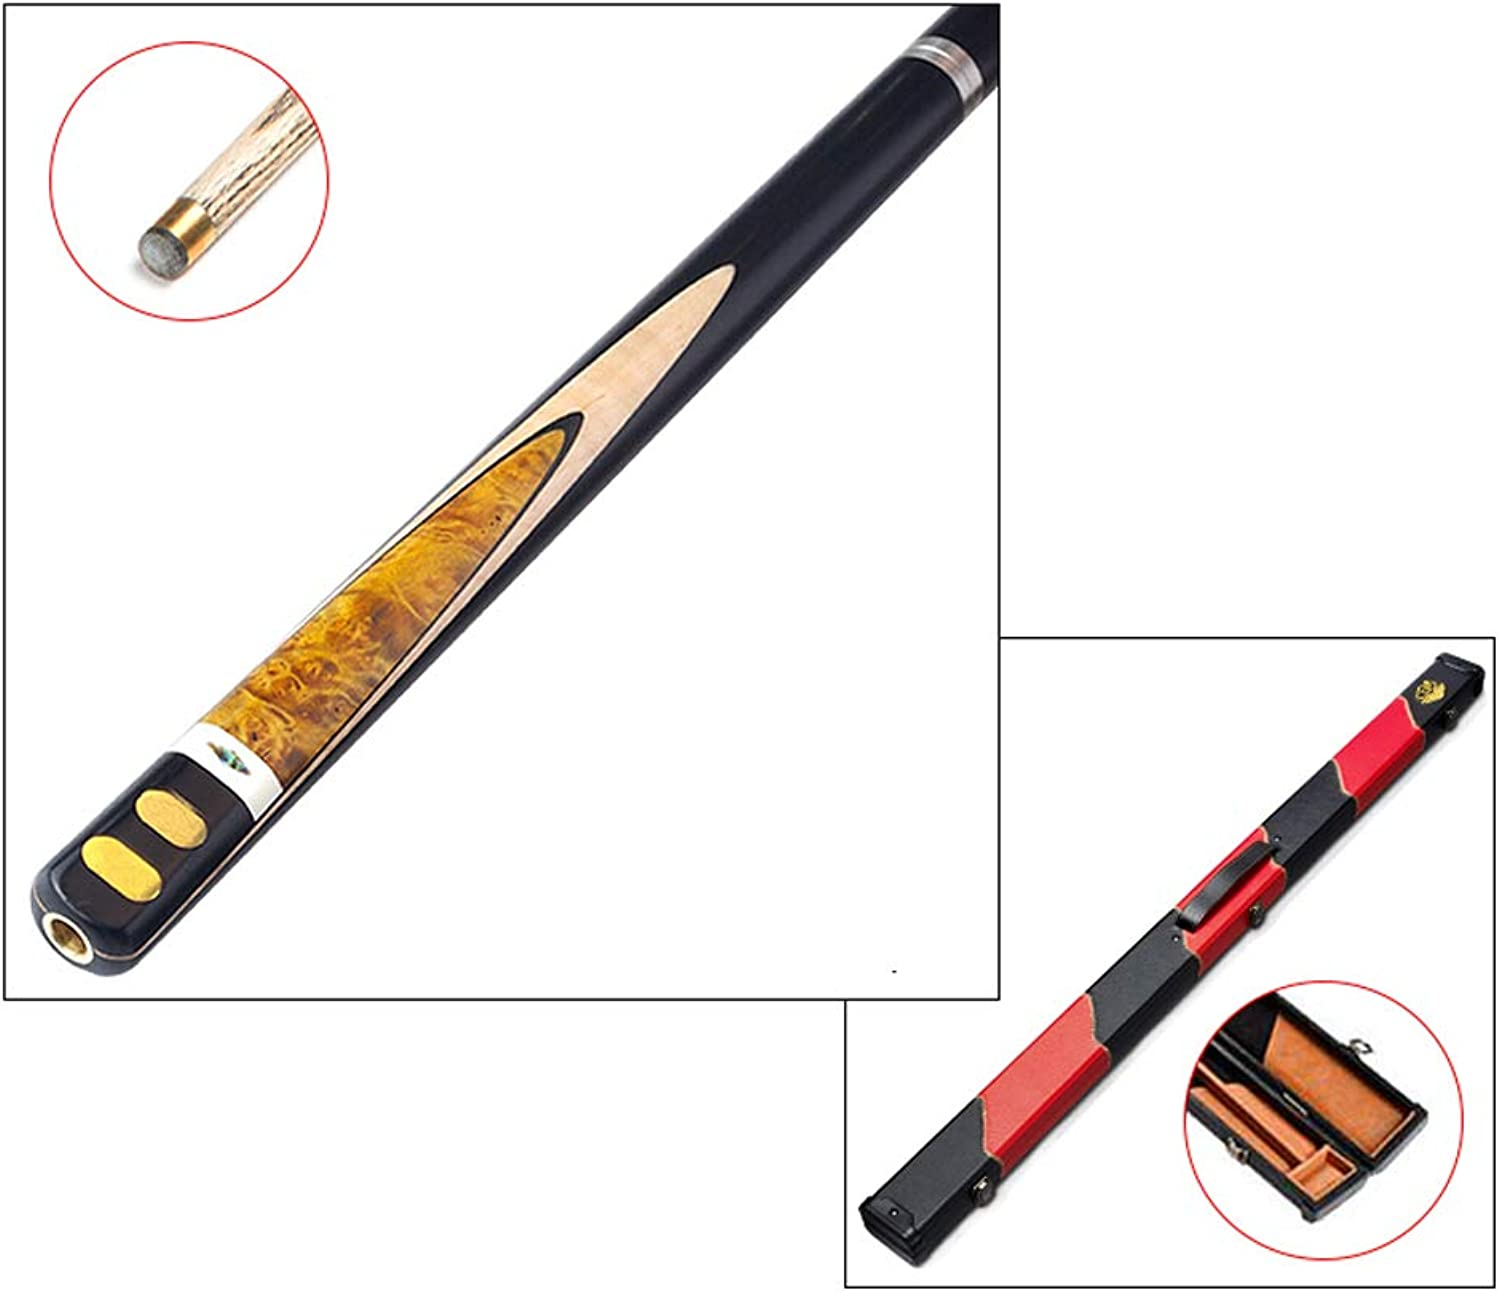 HETAO Pool Cue, Handmade 3 4 Rod Through 10mm Tip Snooker Black 8 Club American Billiard Bar with Rod Case Rubber Cushion Indoor